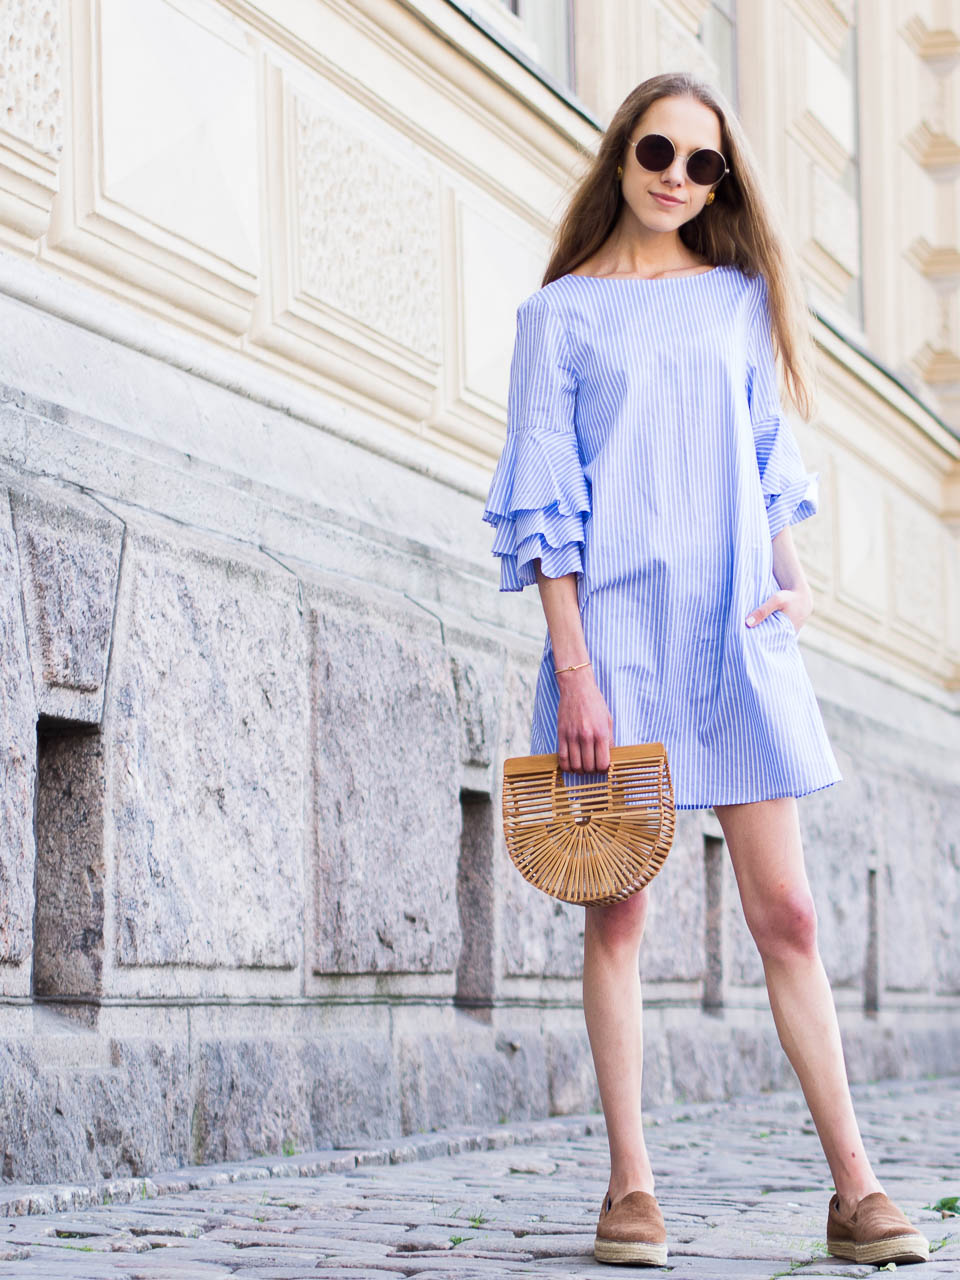 fashion-blogger-outfit-inspiration-summer-dress-cult-gaia